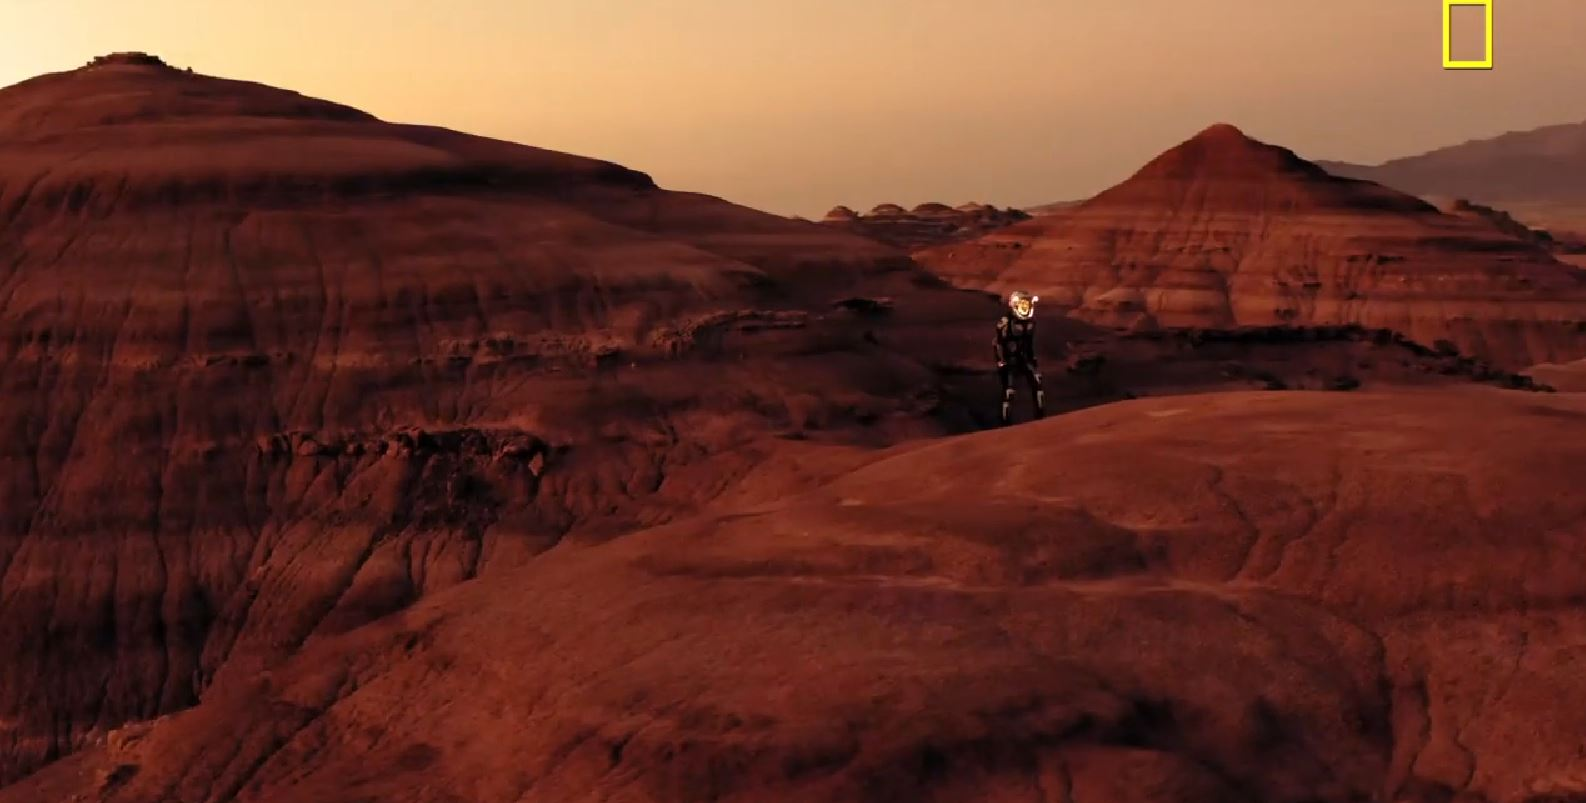 Nat Geo's 'Mars' Series Takes Viewers on Journey to Red Planet